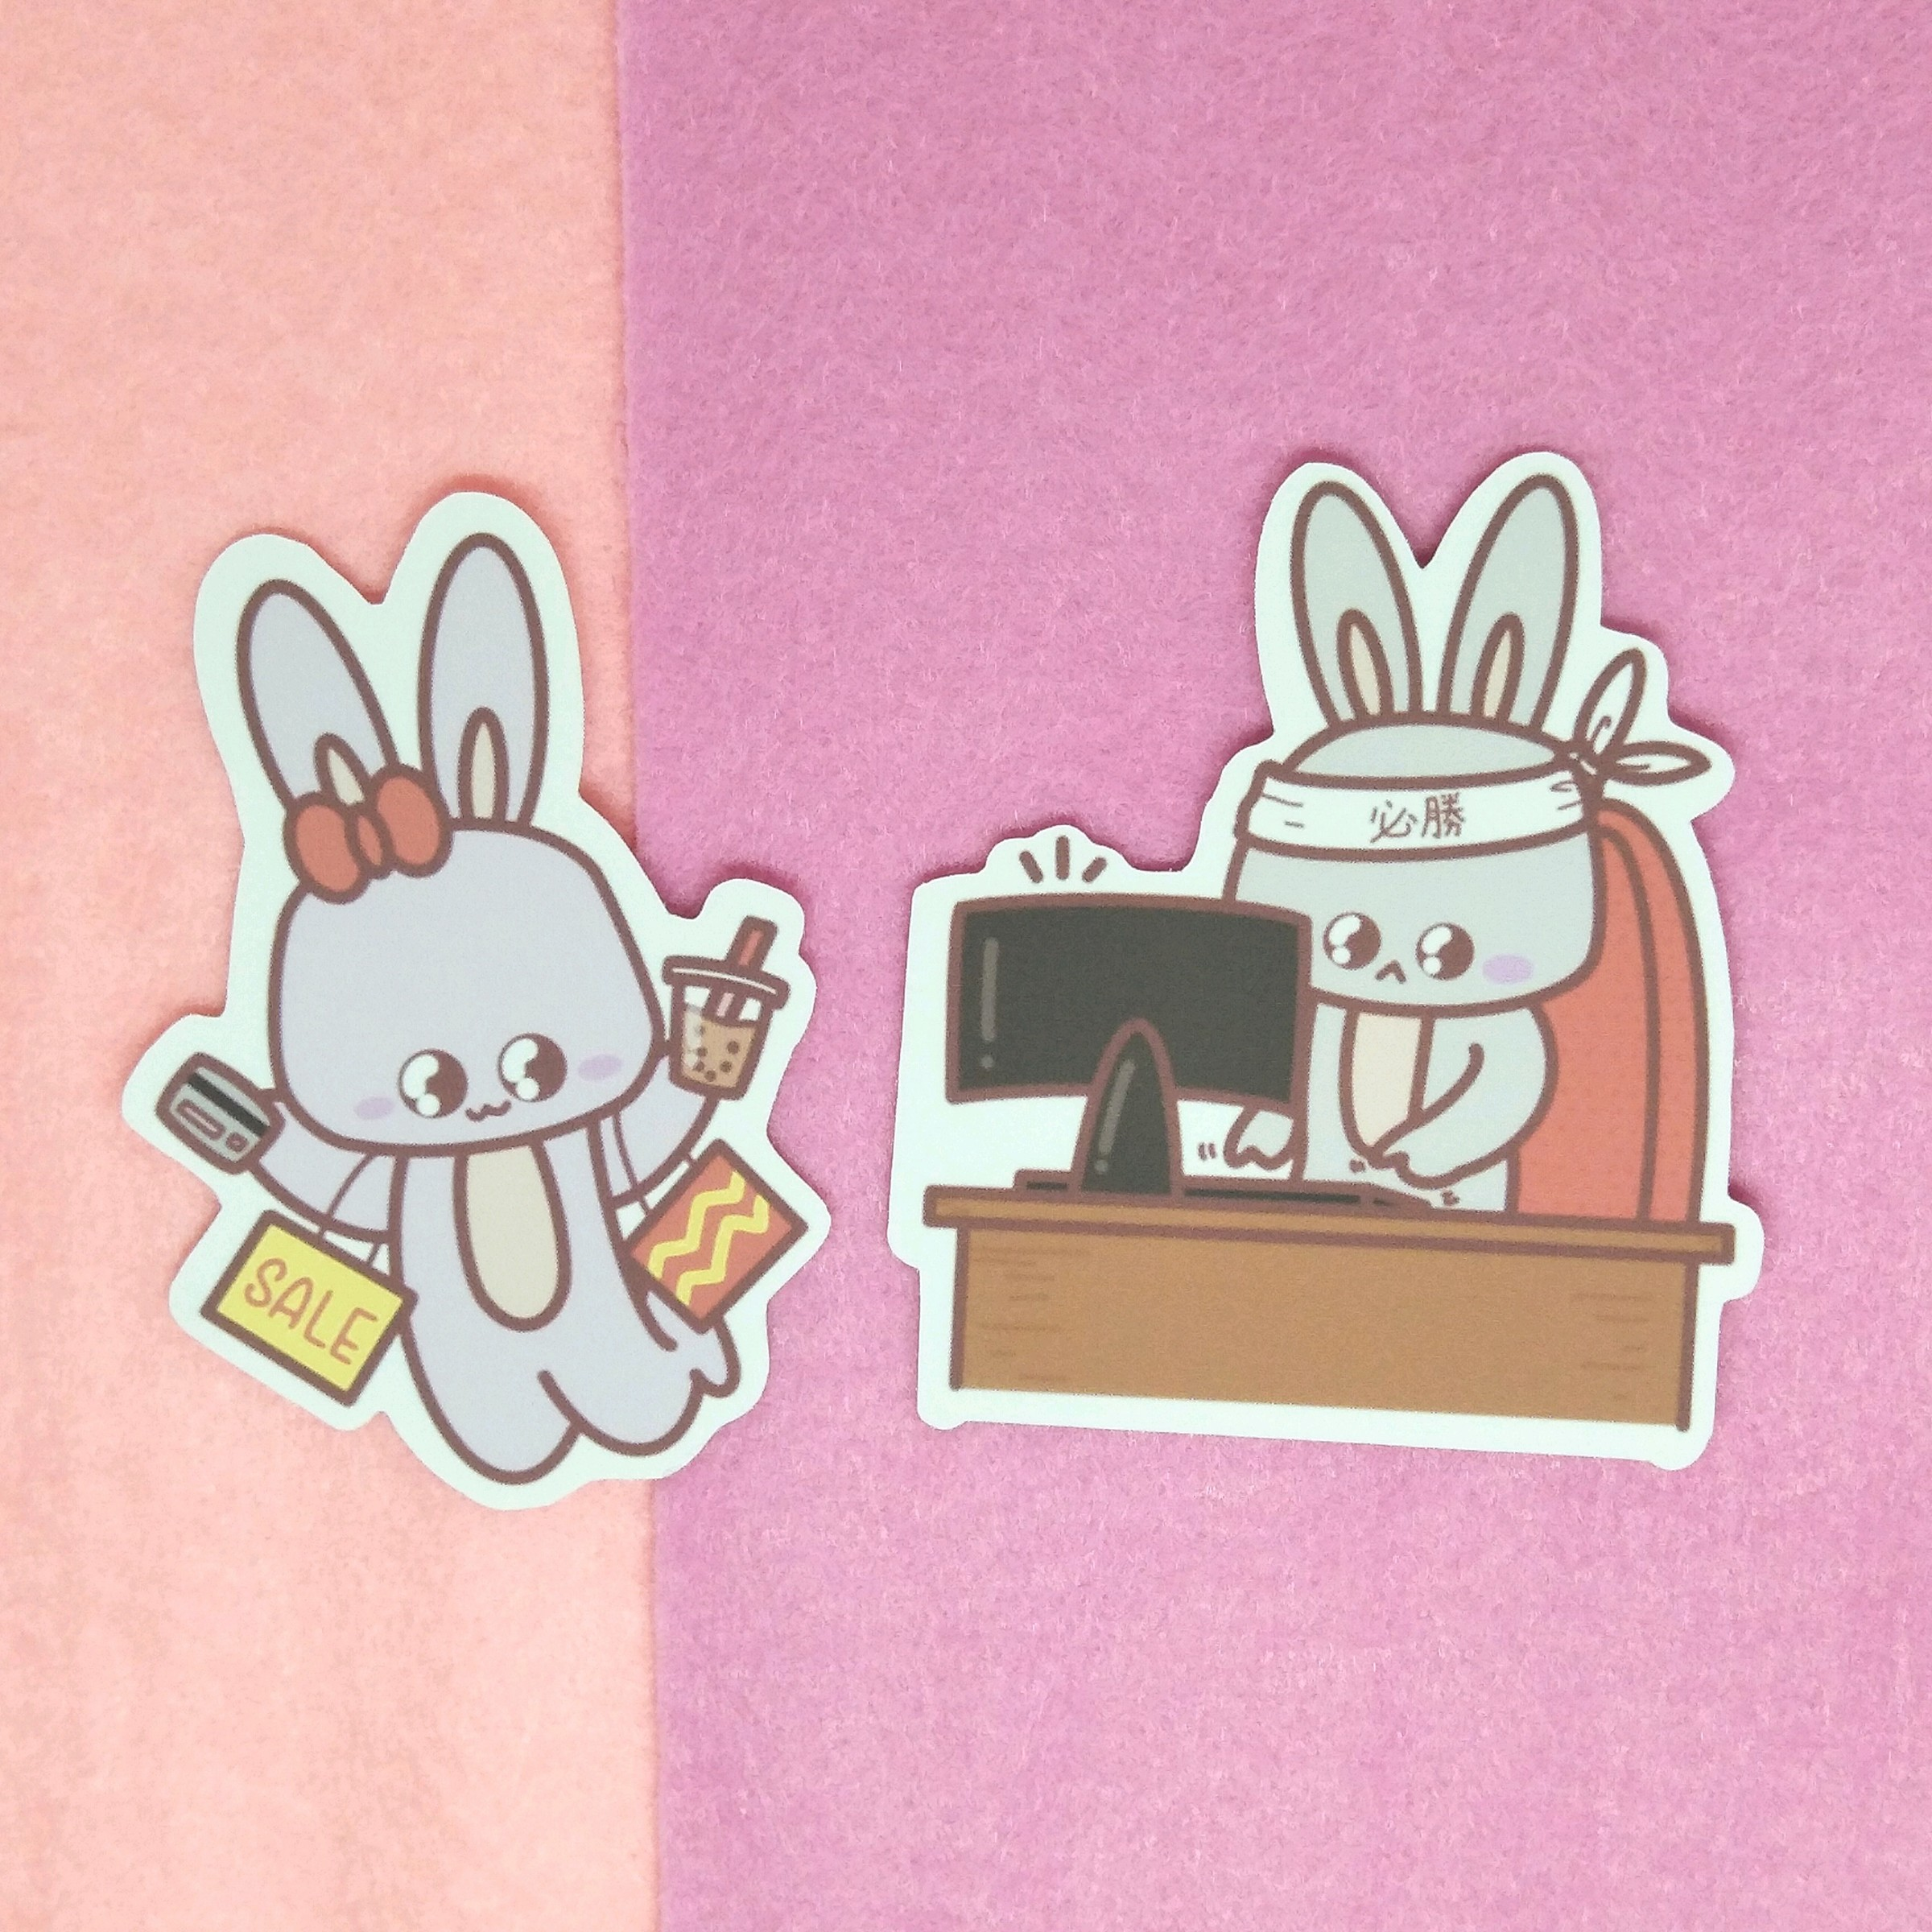 Shopaholic and workaholic stickers.jpg